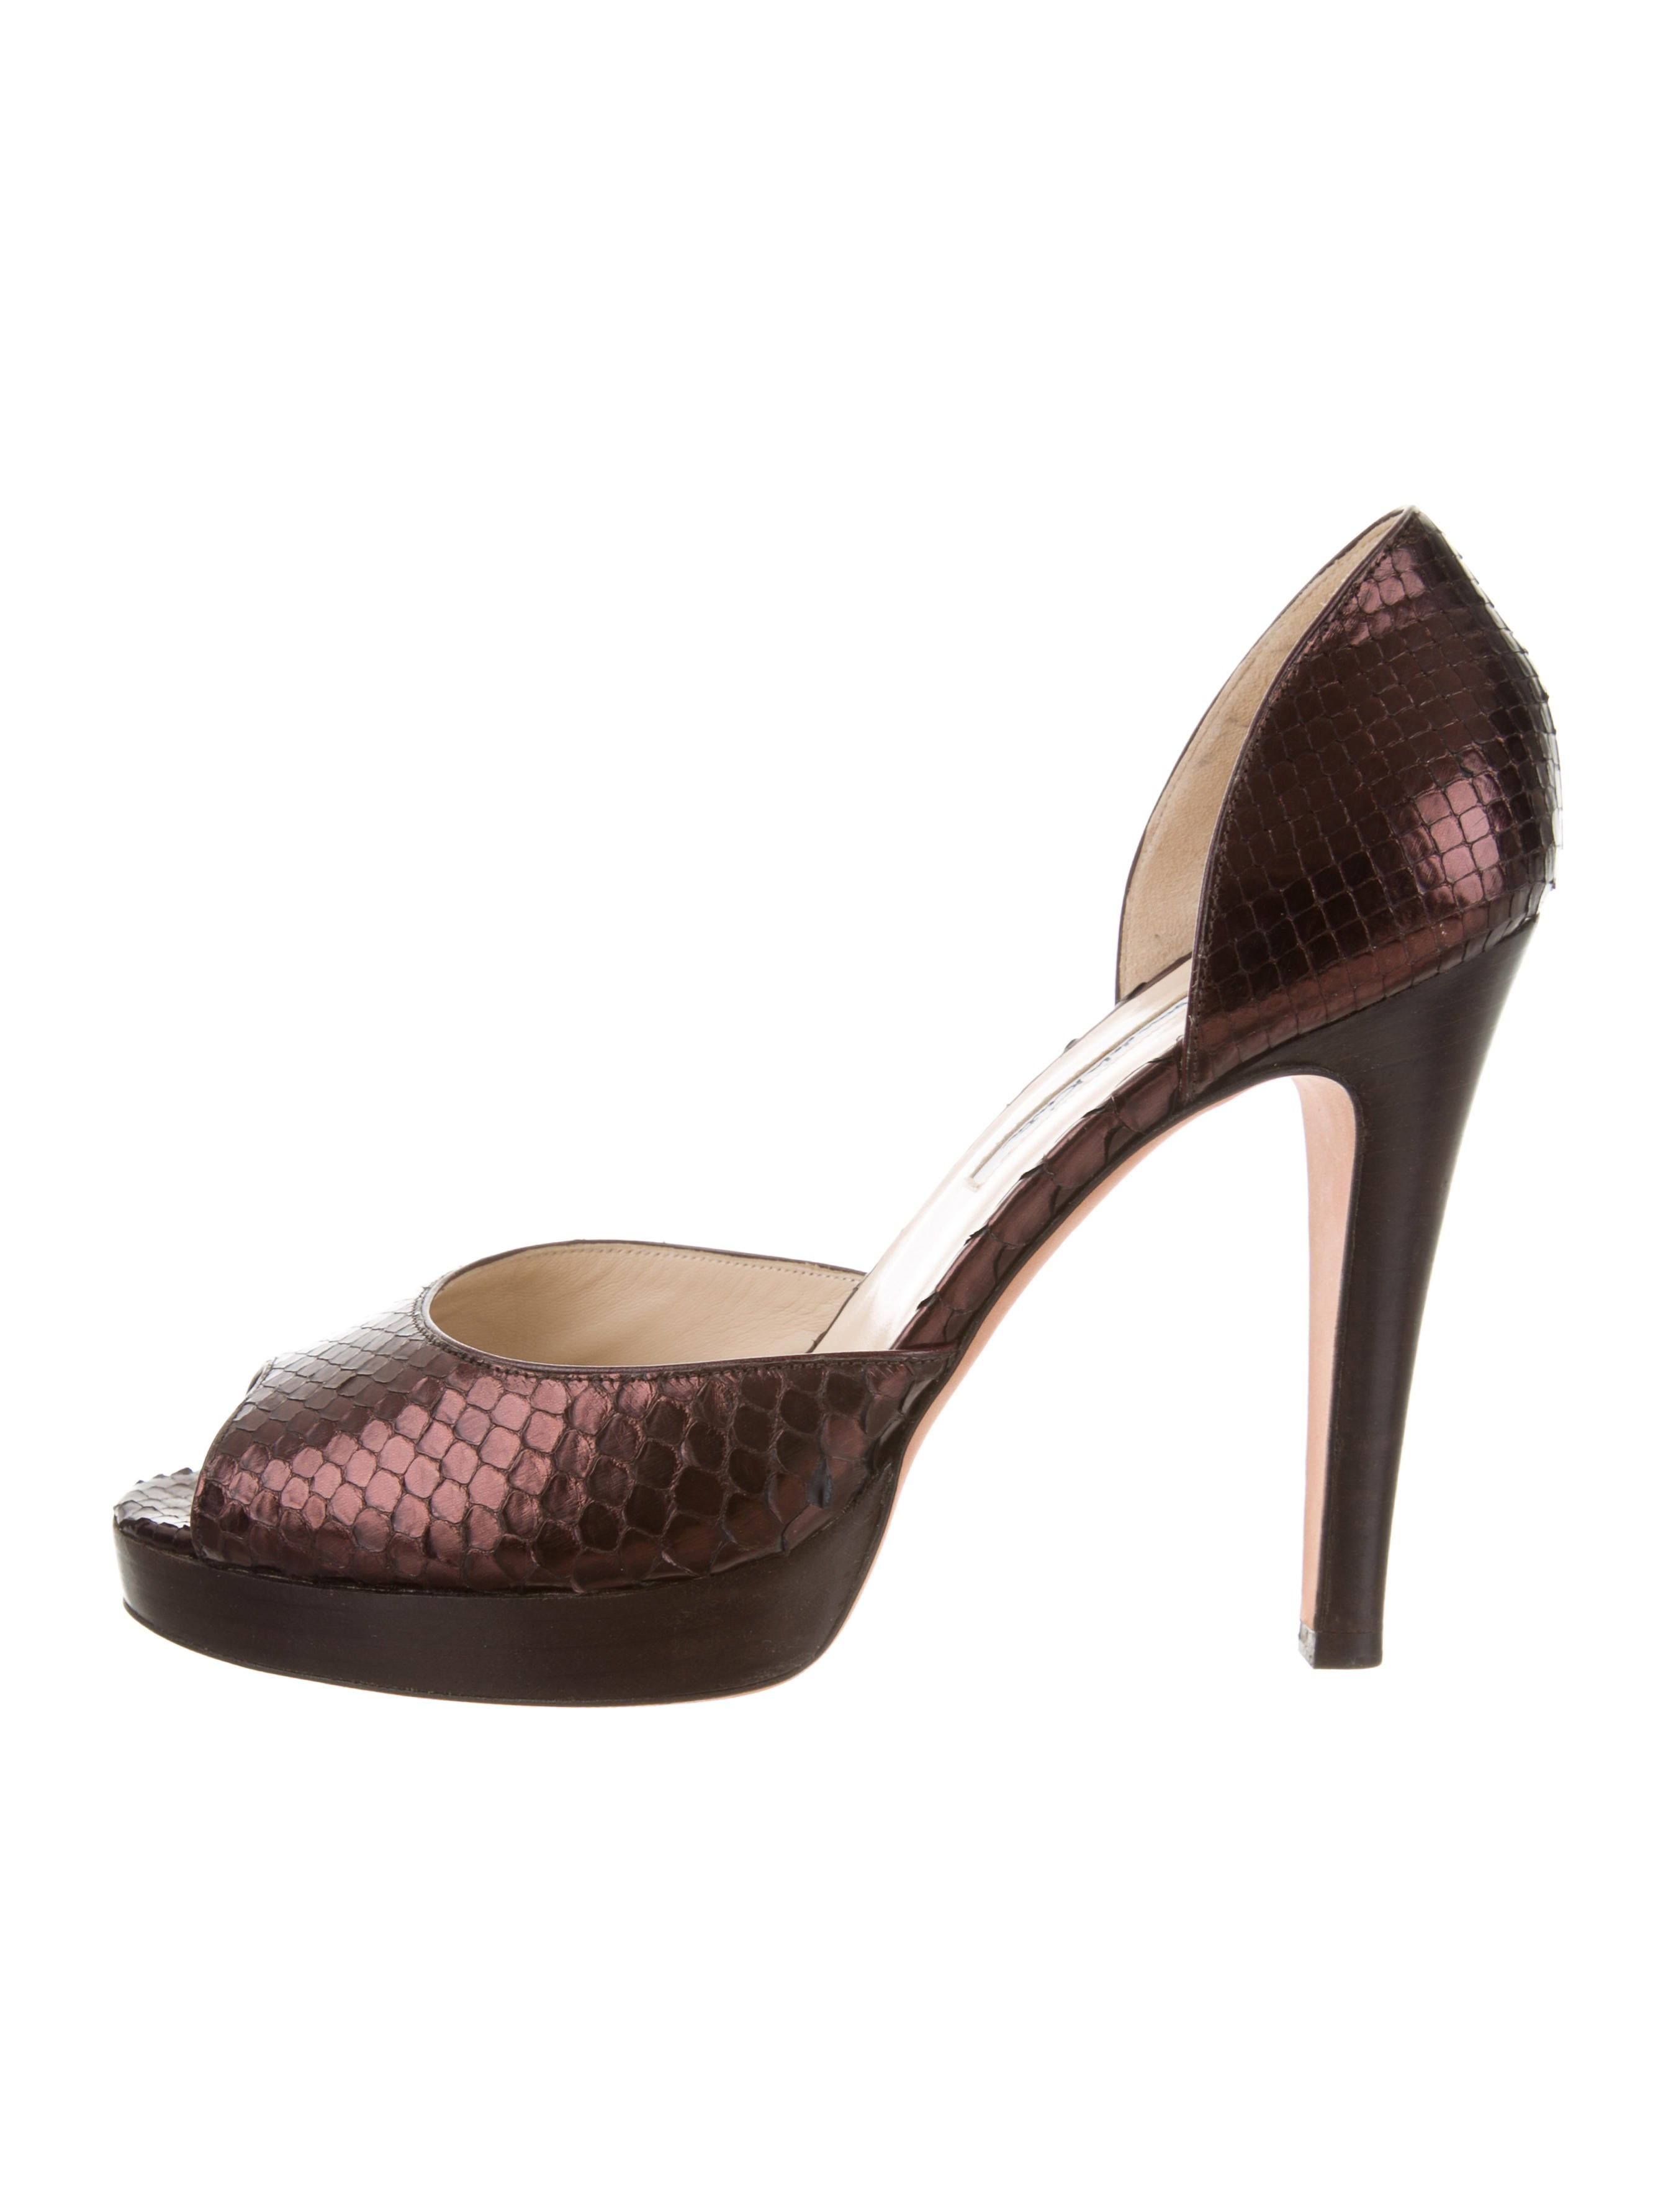 Oscar de la Renta Embellished d'Orsay Pumps w/ Tags clearance with credit card SECdQGah6